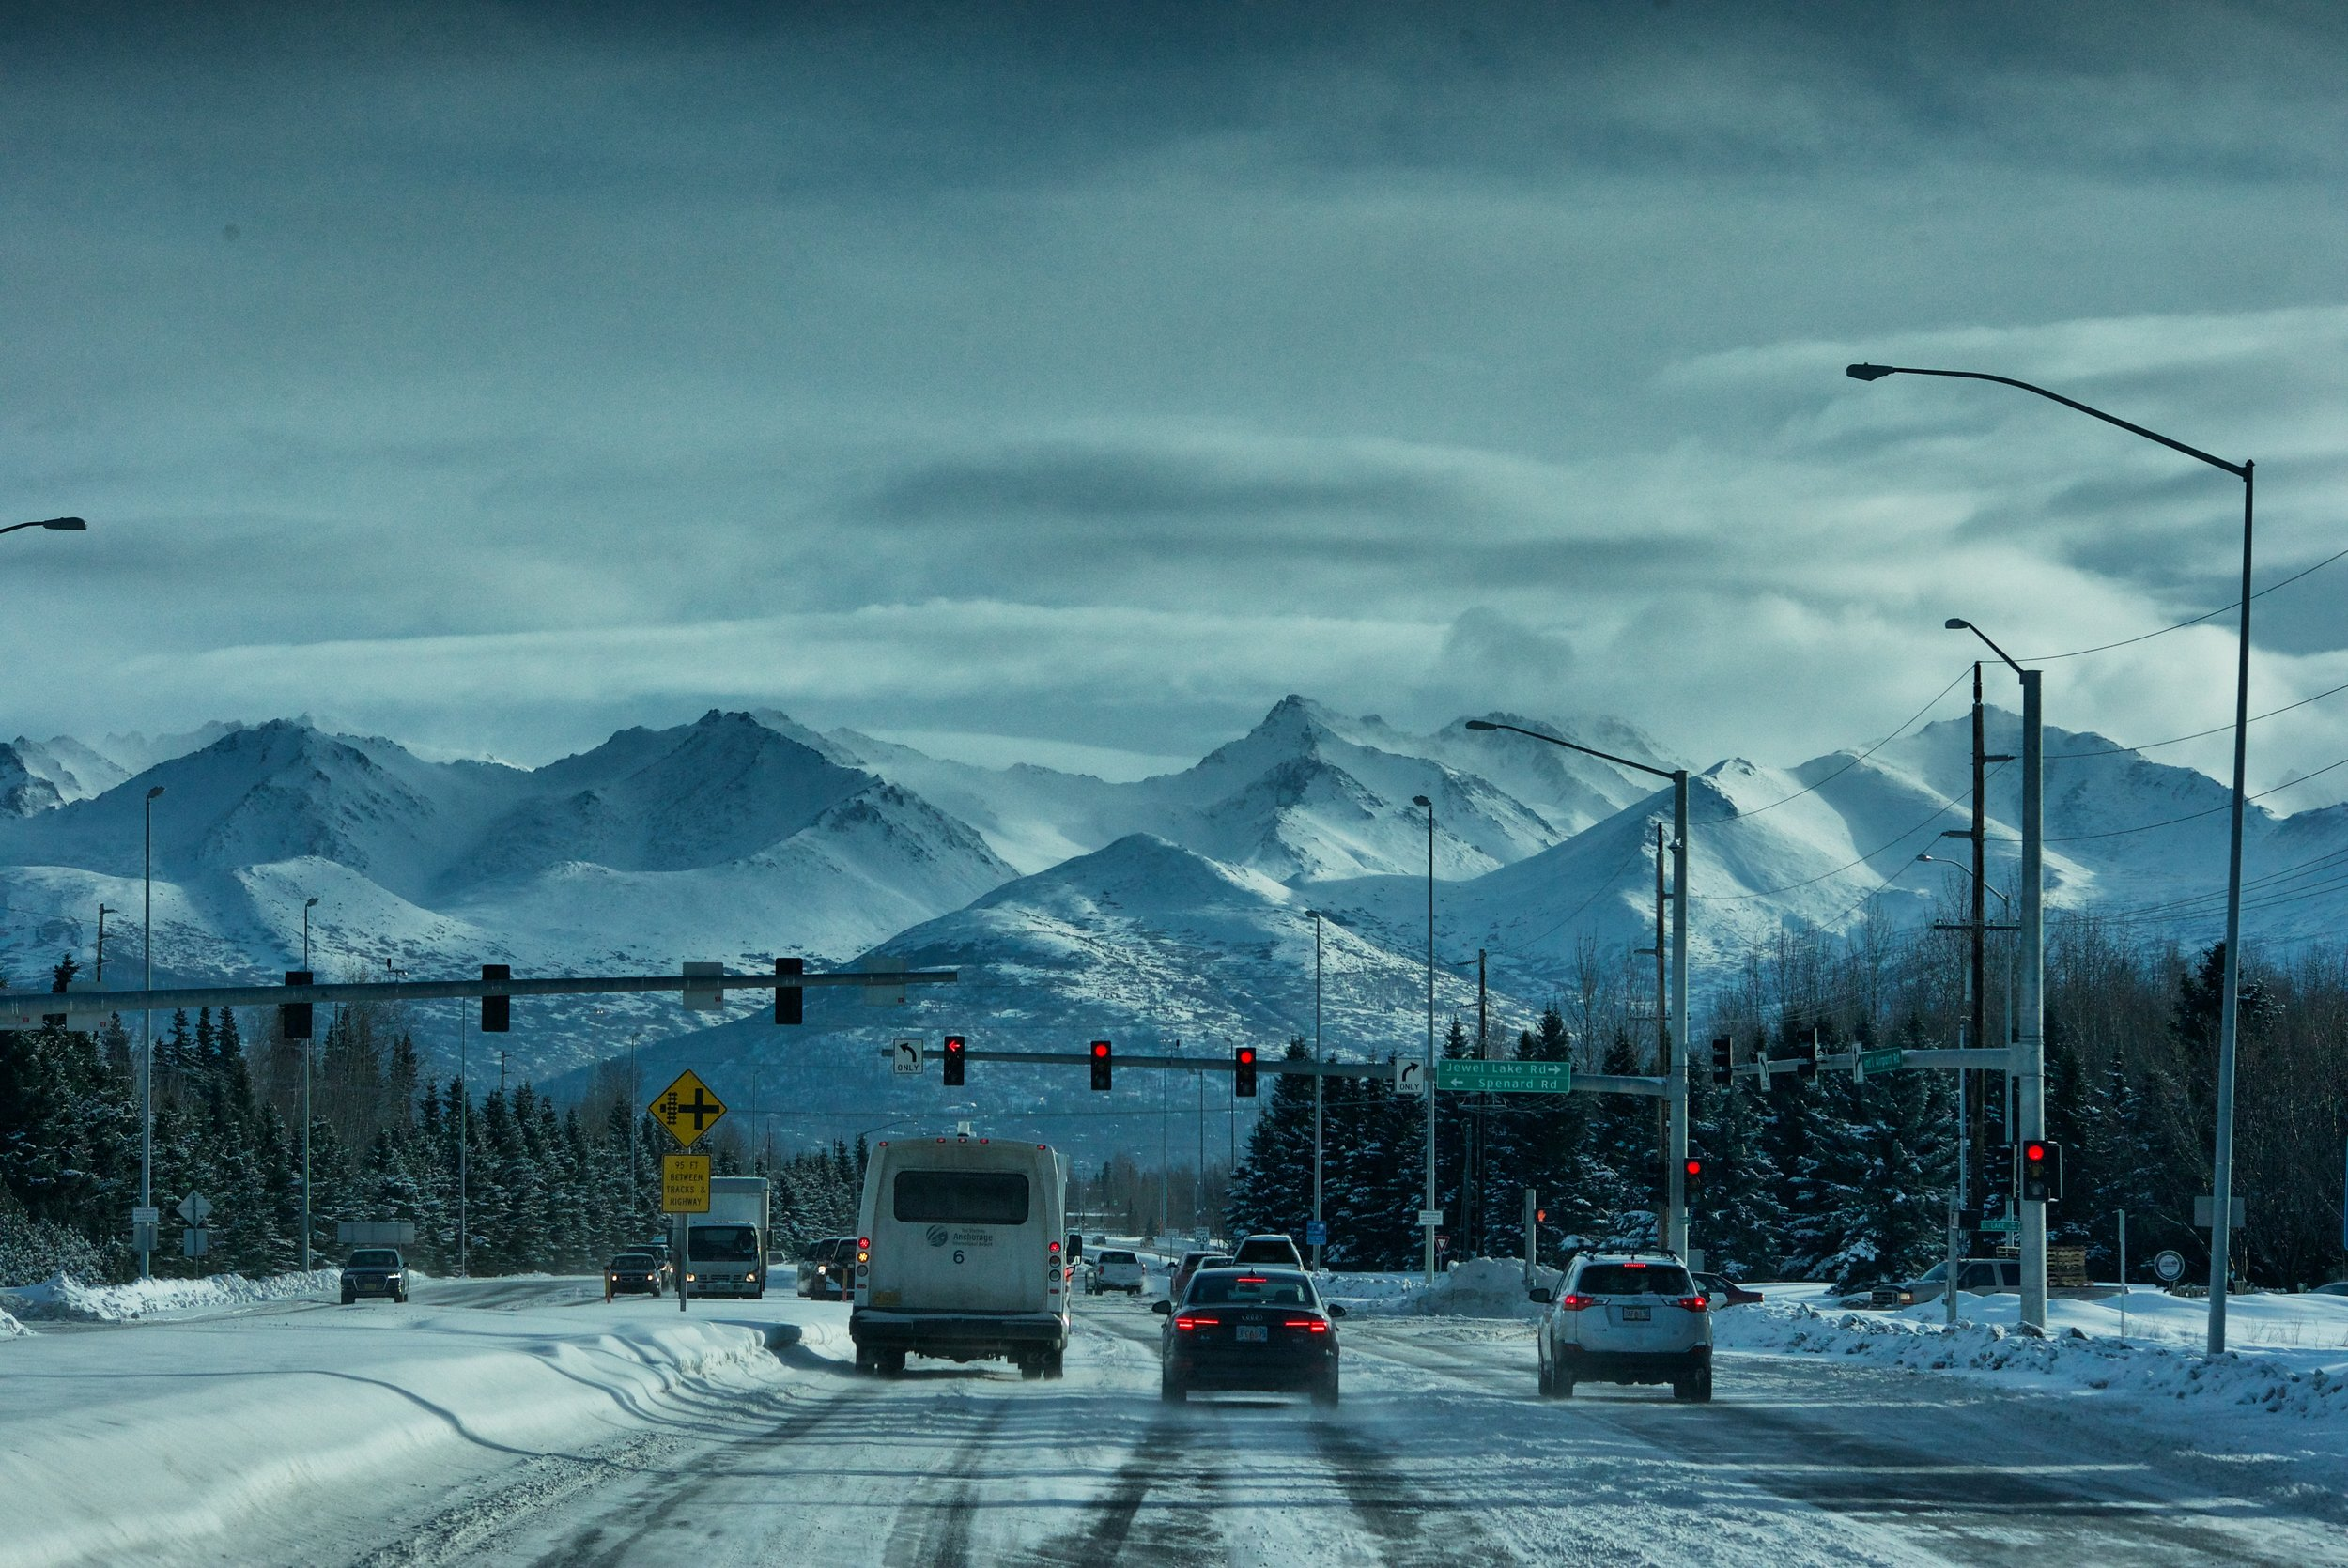 The Road out of Anchorage